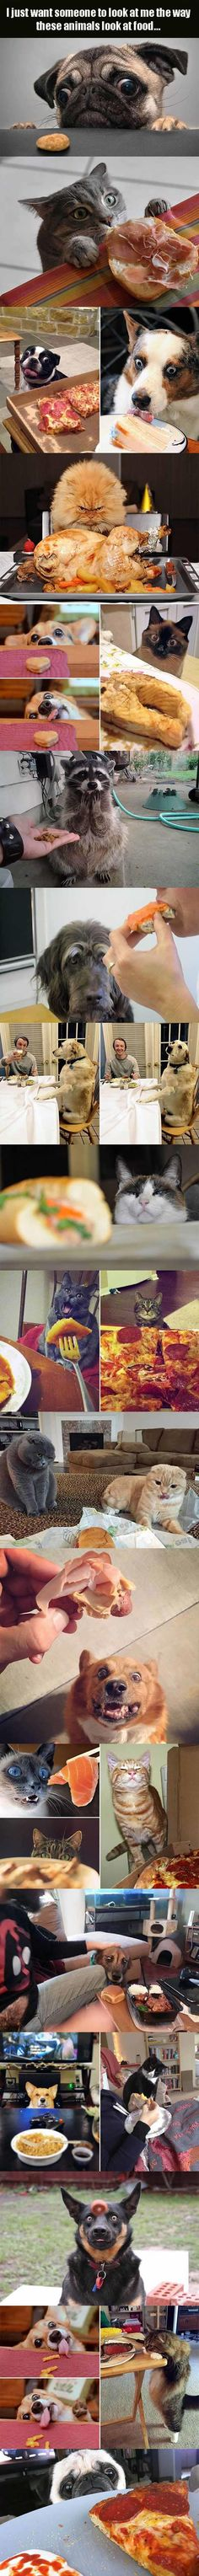 I Just Want Someone To Look At Me, The Way These Animals Look At Food - 18 Pics